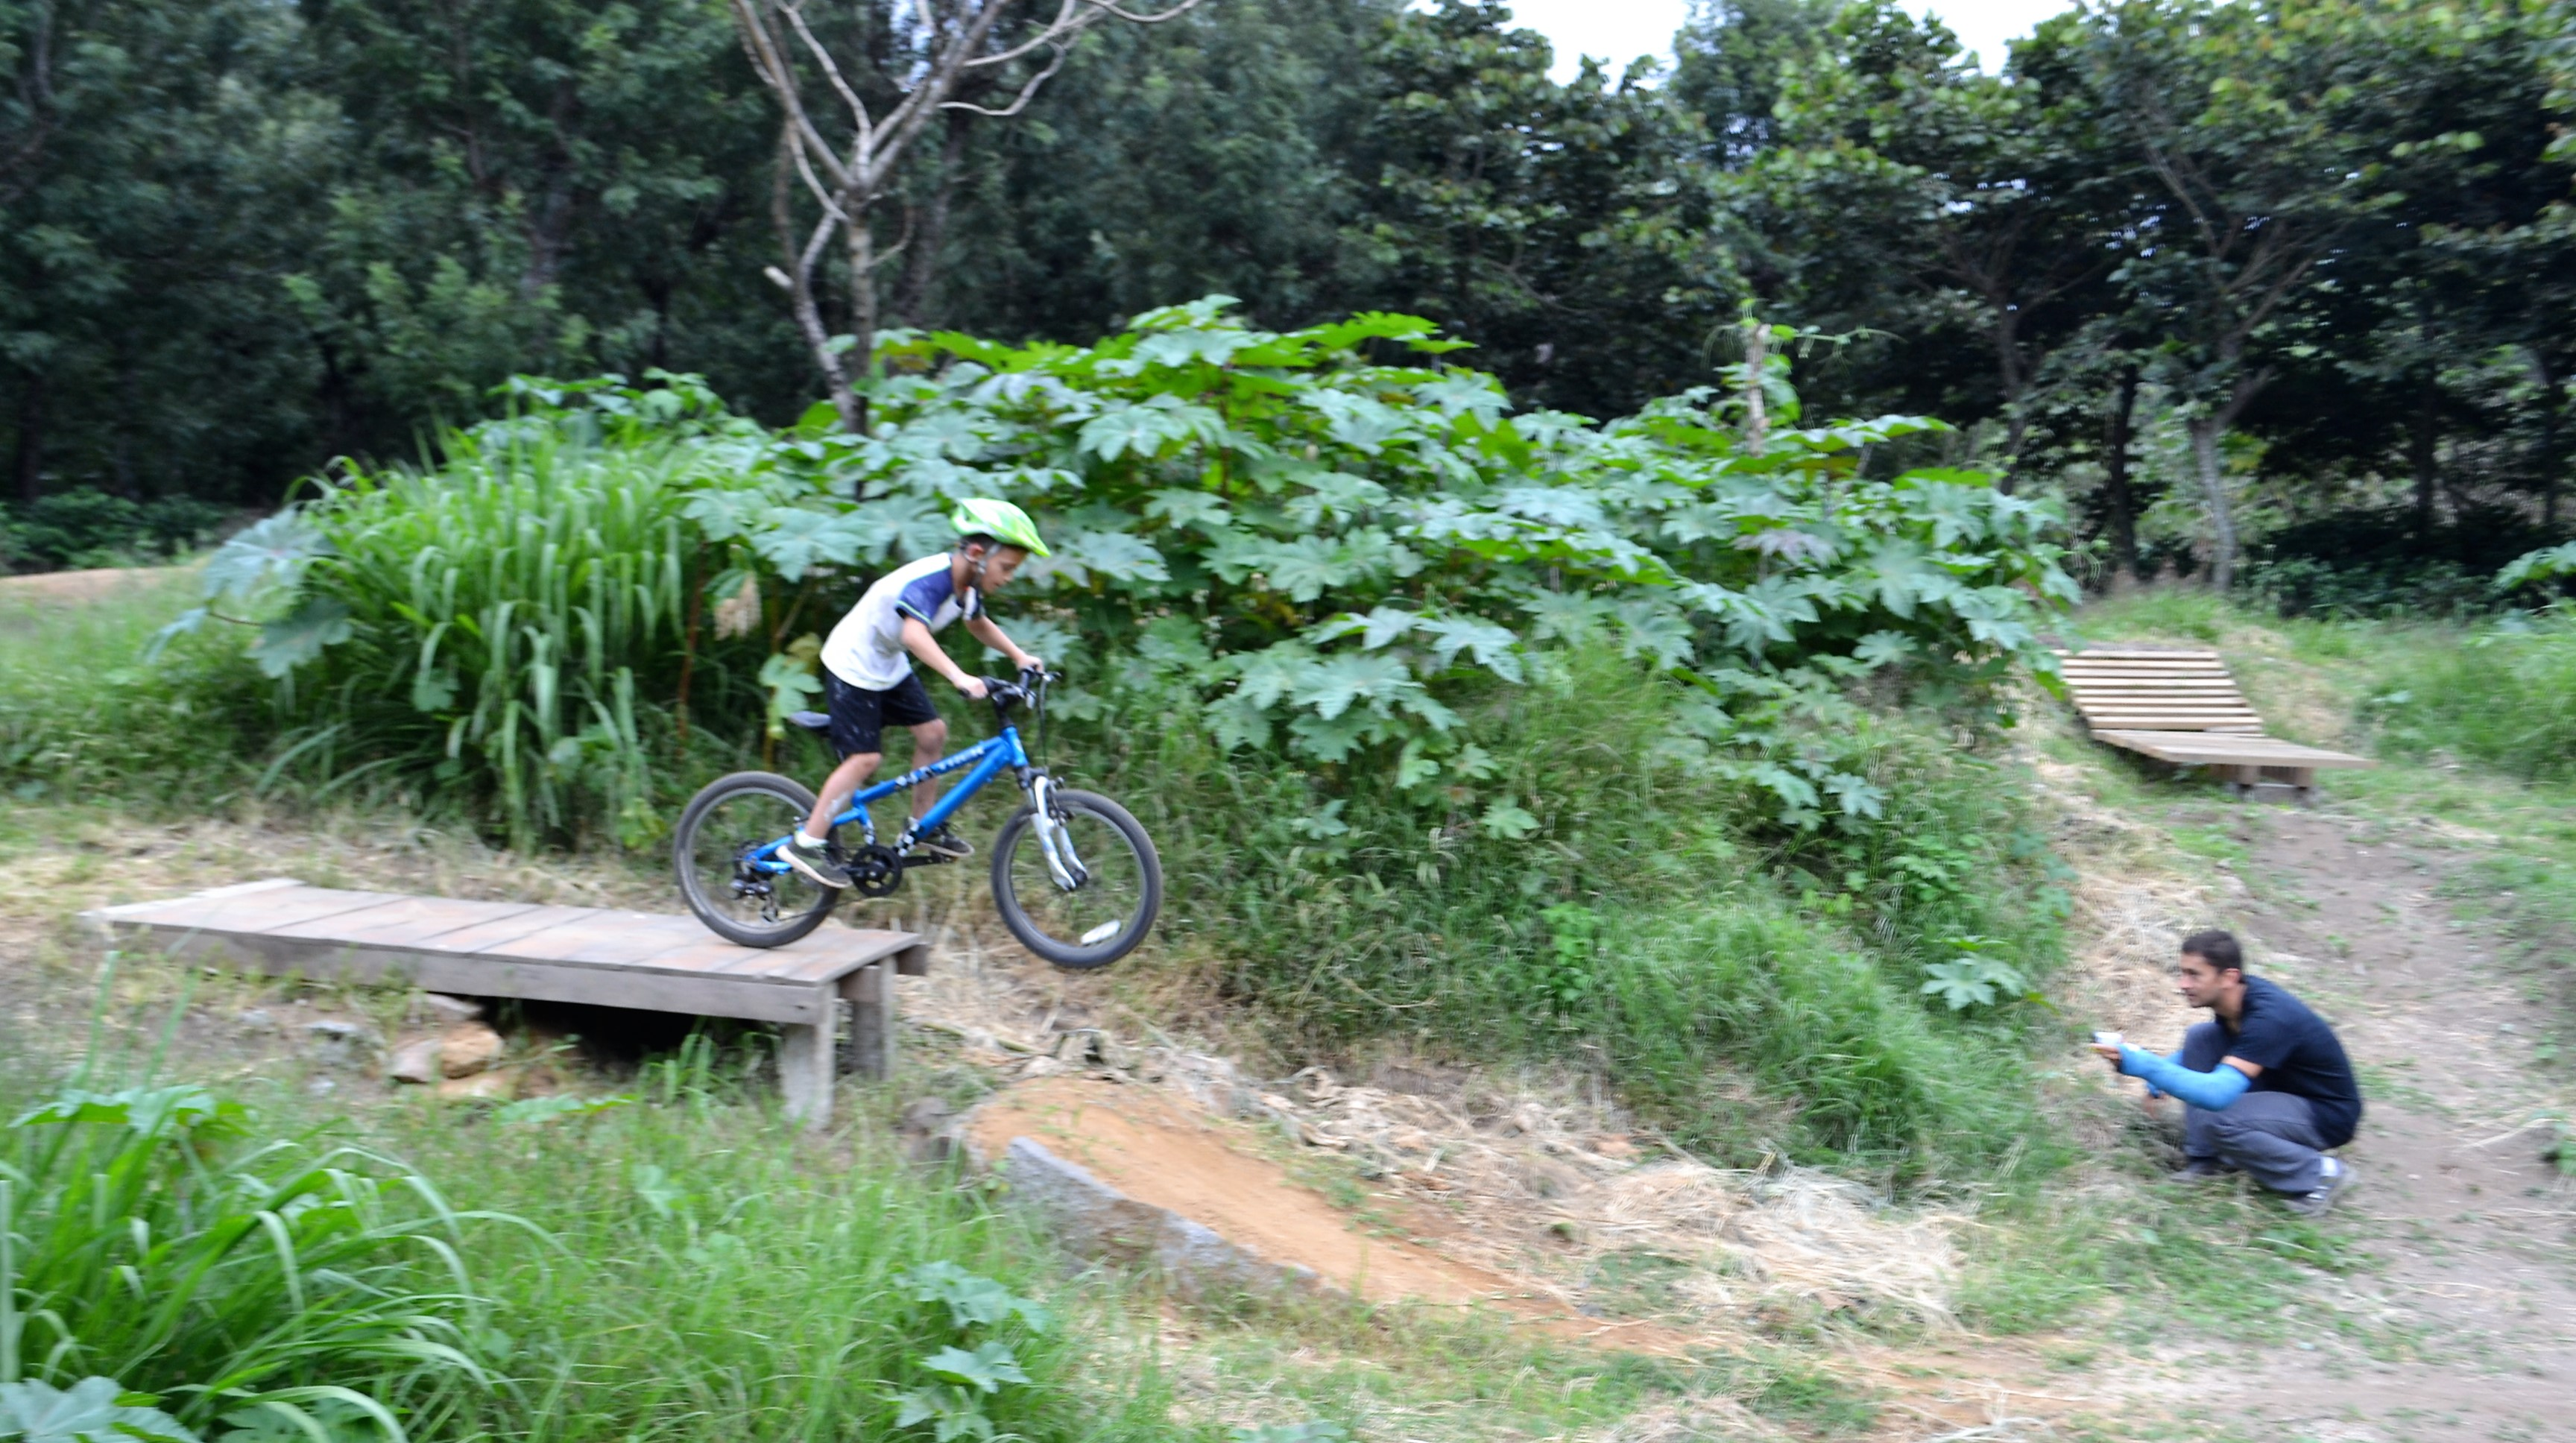 bike ramps, bike jumps find them all on a pump track